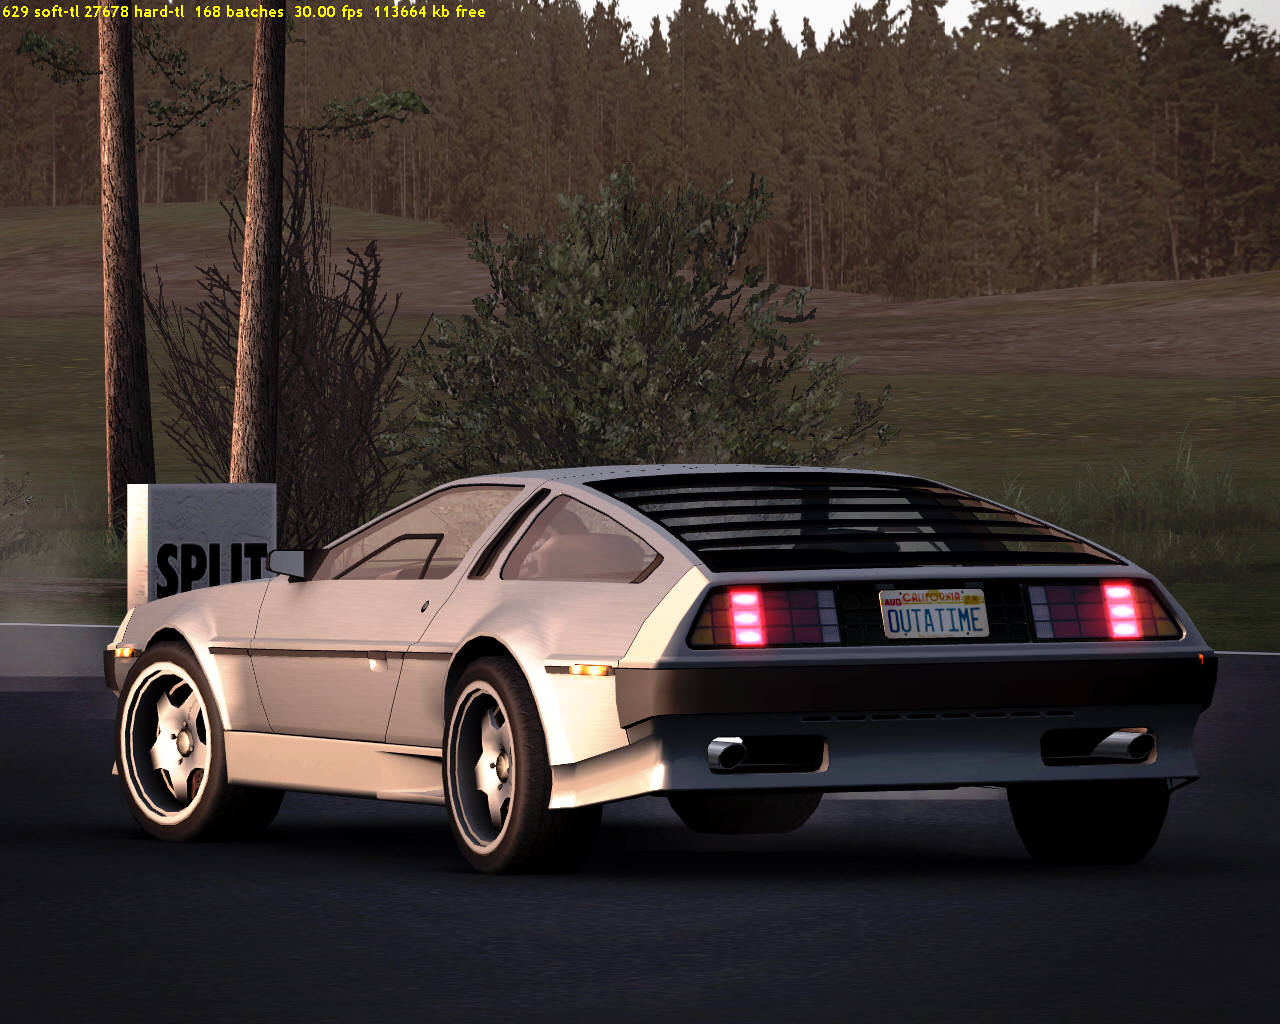 Delorean DMC-12 1982 #4